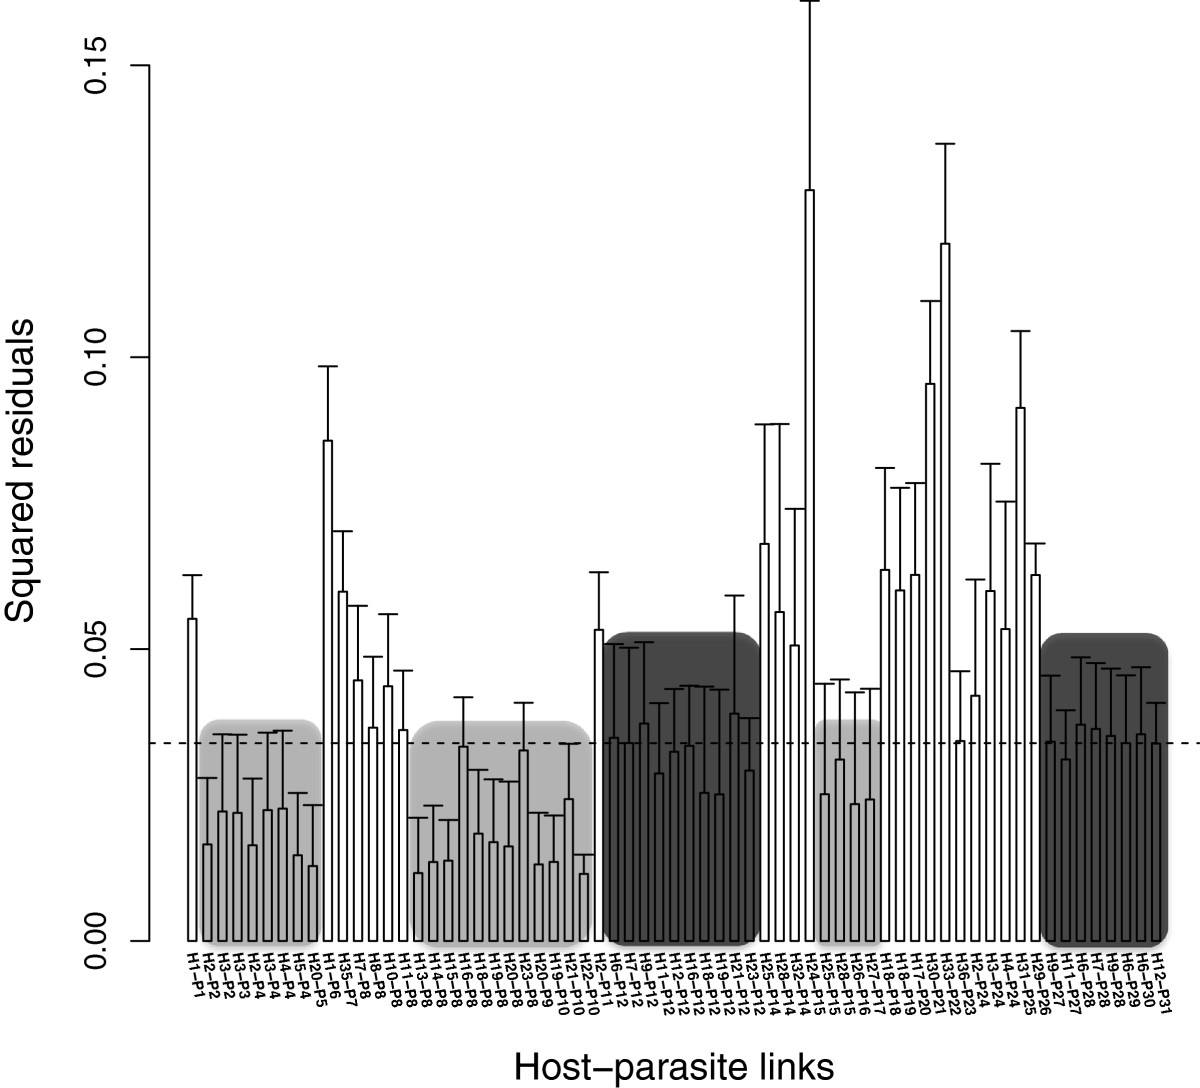 http://static-content.springer.com/image/art%3A10.1186%2F1756-3305-7-286/MediaObjects/13071_2014_Article_1469_Fig2_HTML.jpg